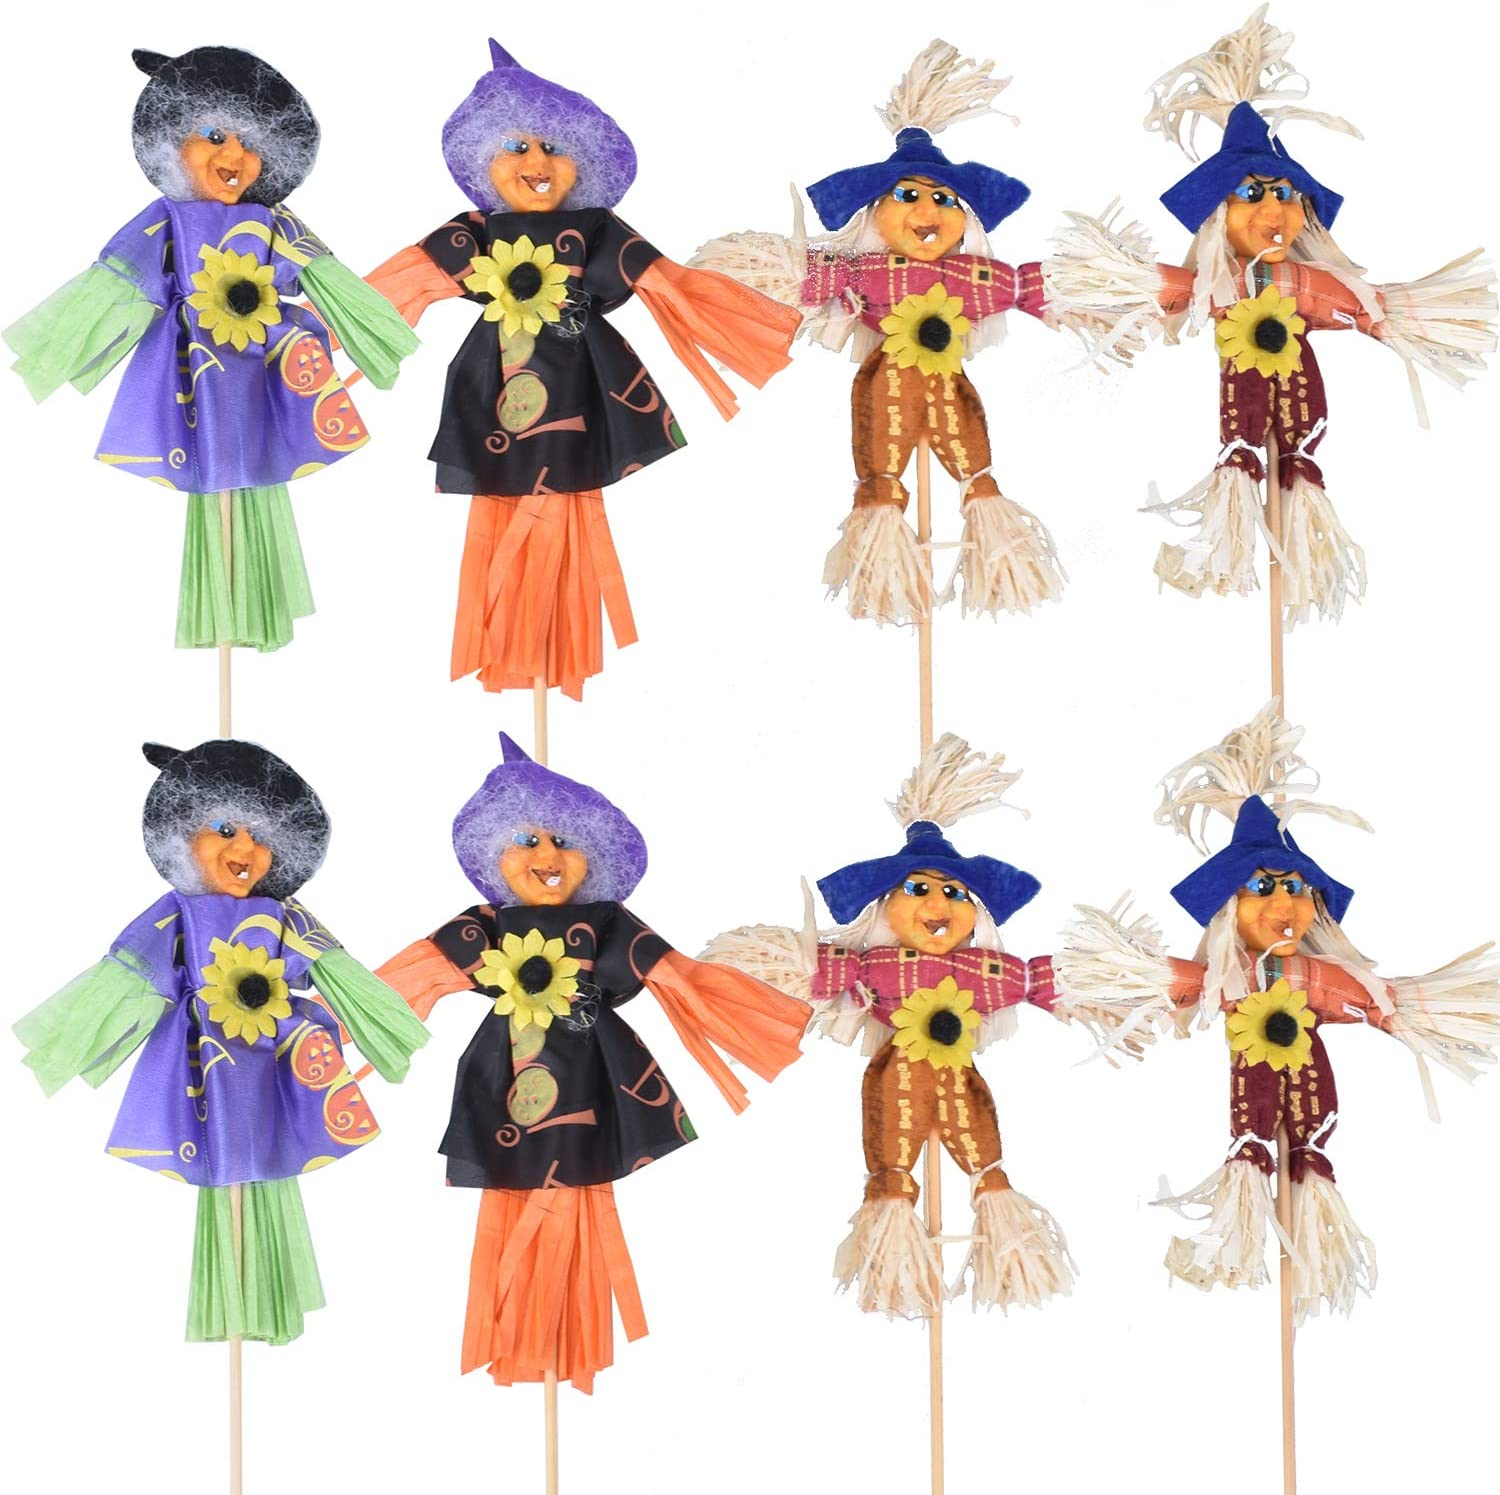 8 Pieces Halloween Fall Harvest Scarecrow Decor, Thanksgiving Scarecrow Decoration Fall Decorations for Garden Home Yard Porch Party Décor, Witch